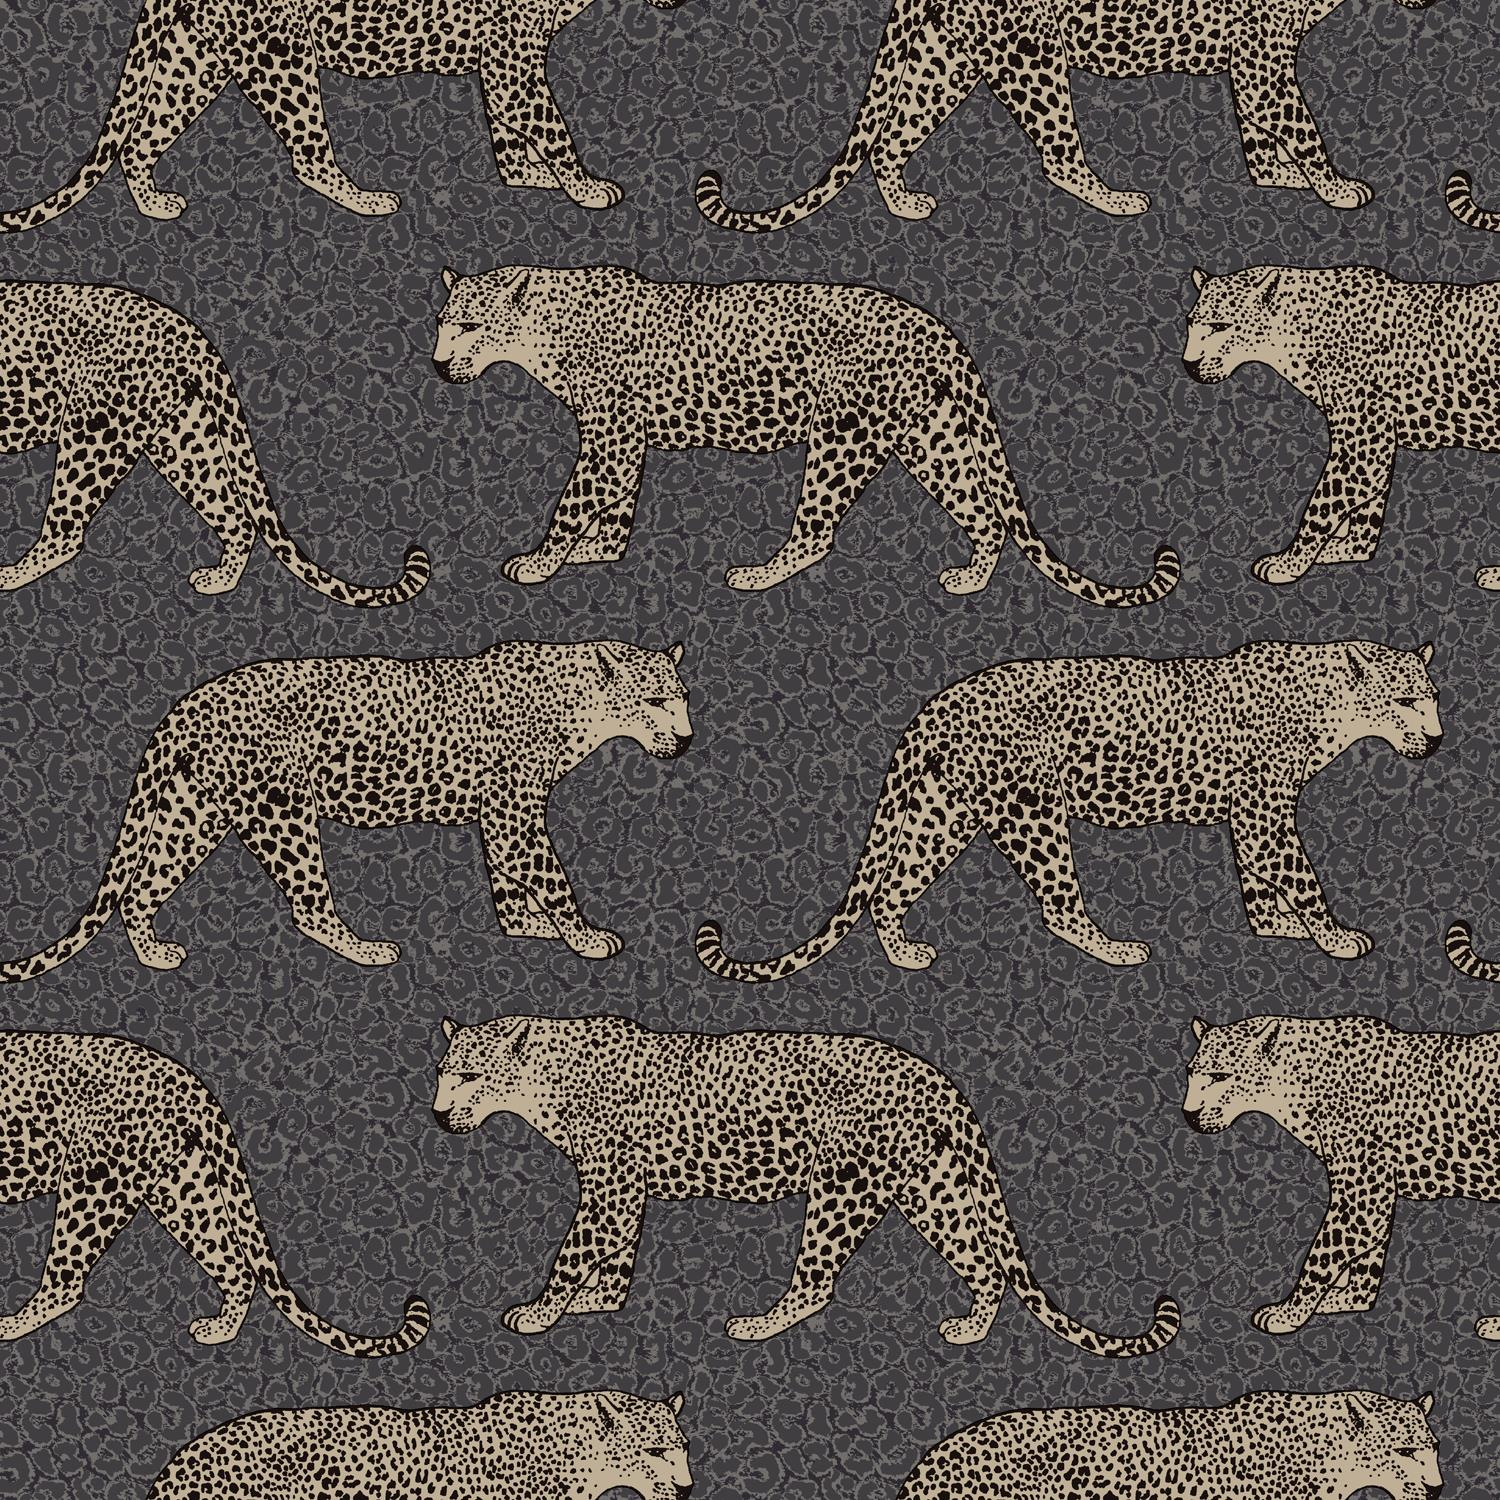 Details About Black Gold Leopard Wallpaper Metallic Shimmer Animal Print Spots Feature Rasch